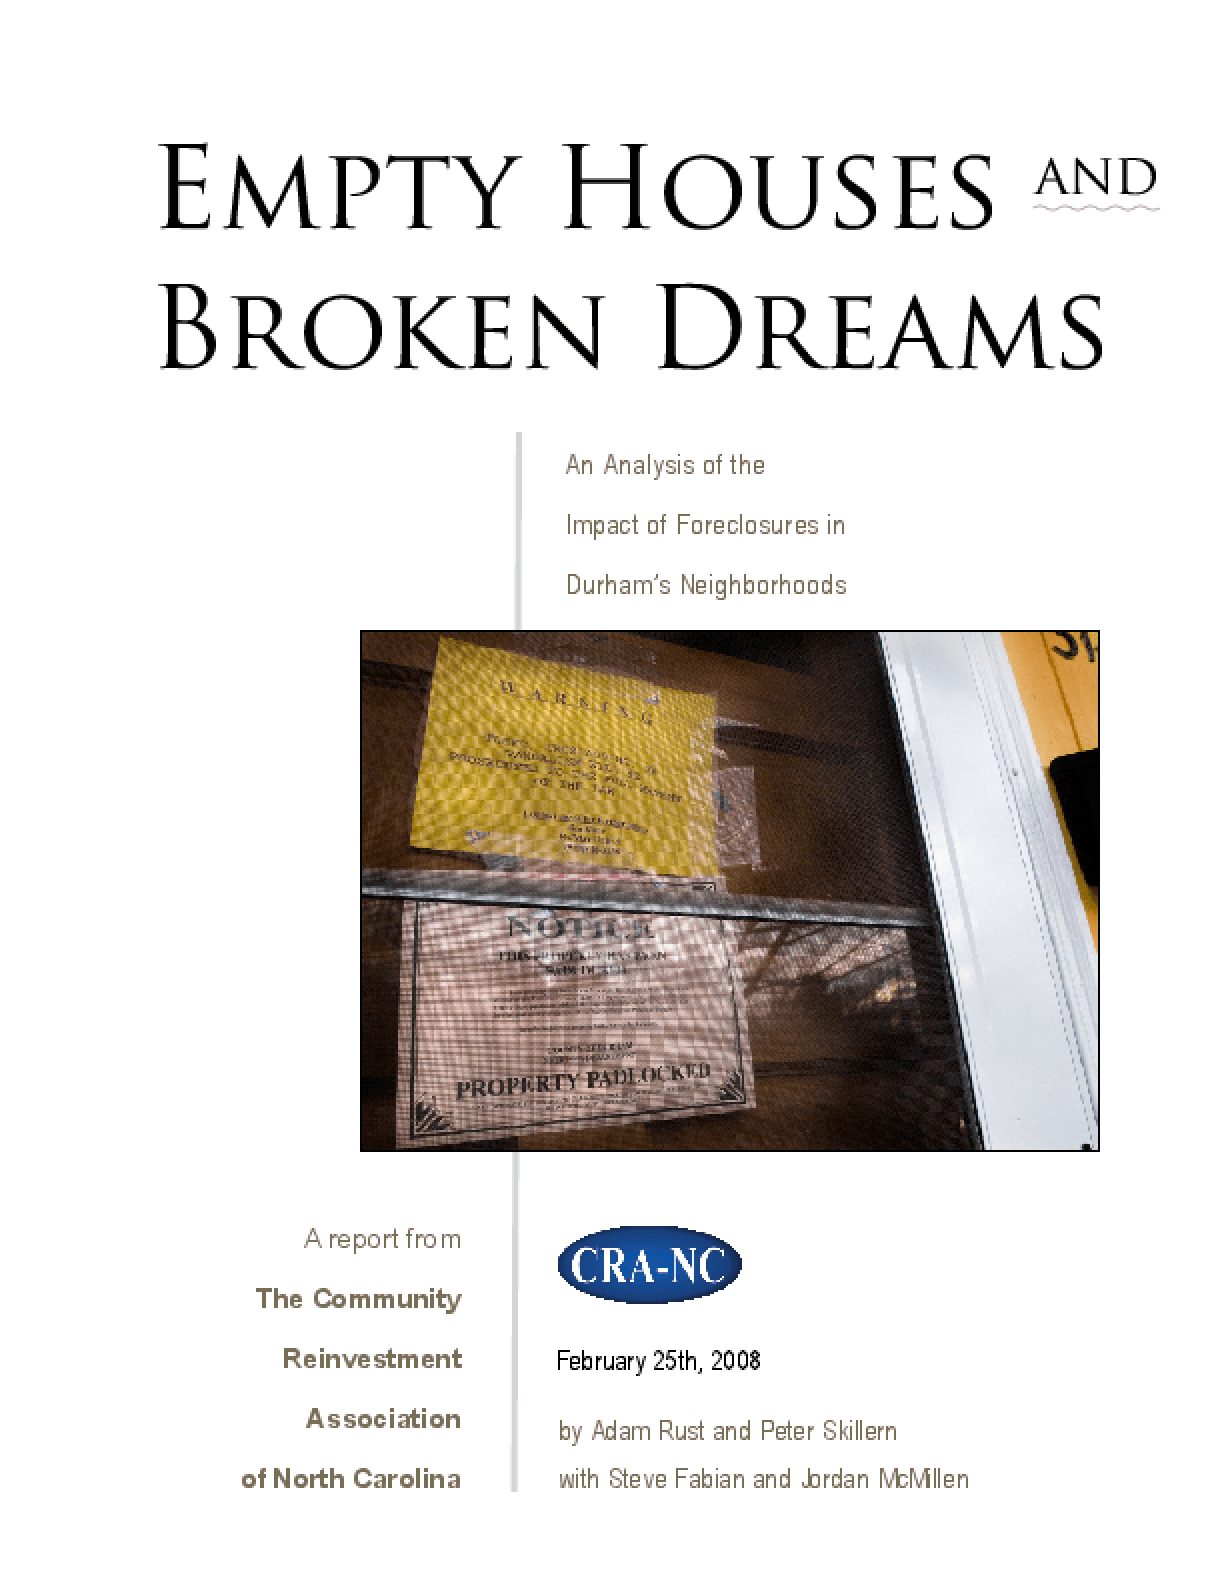 Empty Houses and Broken Dreams: An Analysis of the Impact of Foreclosures in Durham's Neighborhoods